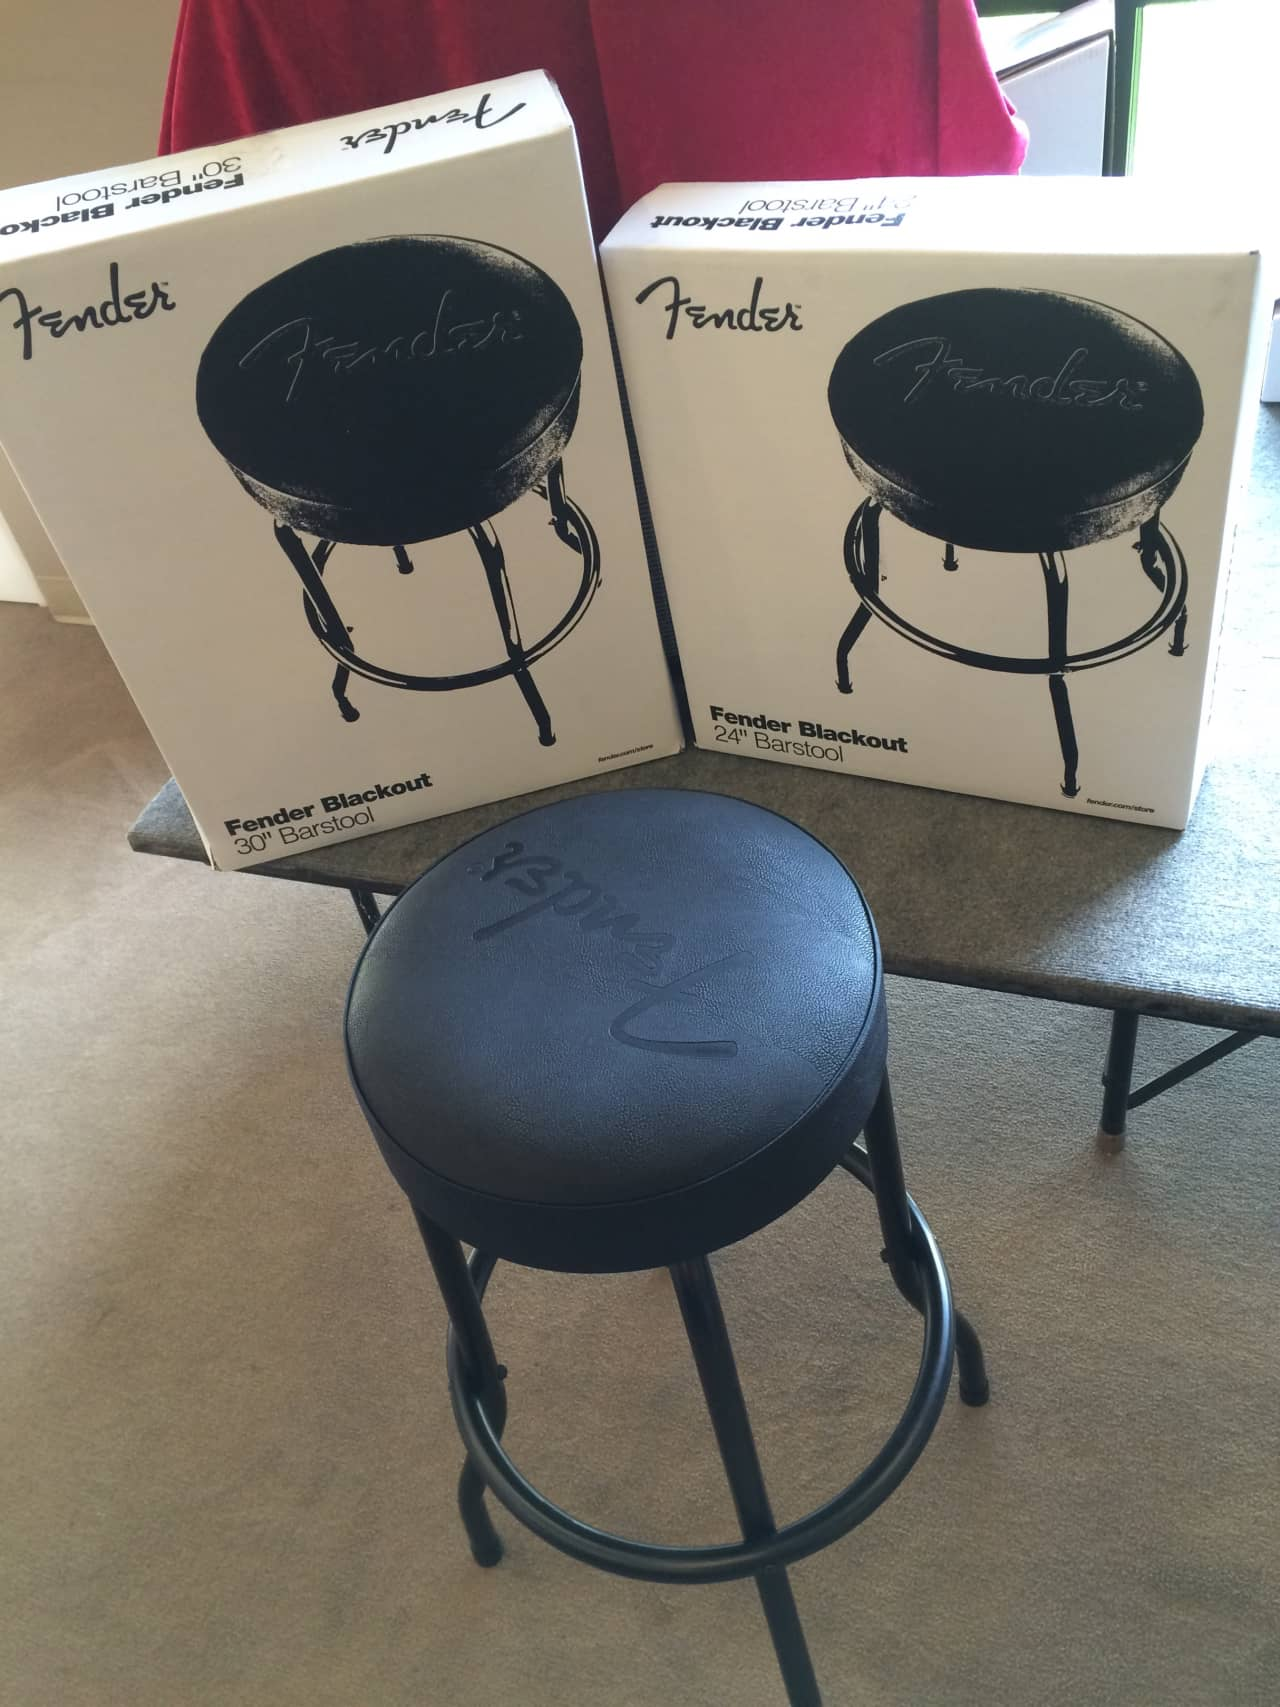 Fender Guitar Bar Stool Blackout Style 30quot Reverb : ozkdyqh7n0zs3sxppj4p from reverb.com size 1280 x 1707 jpeg 165kB